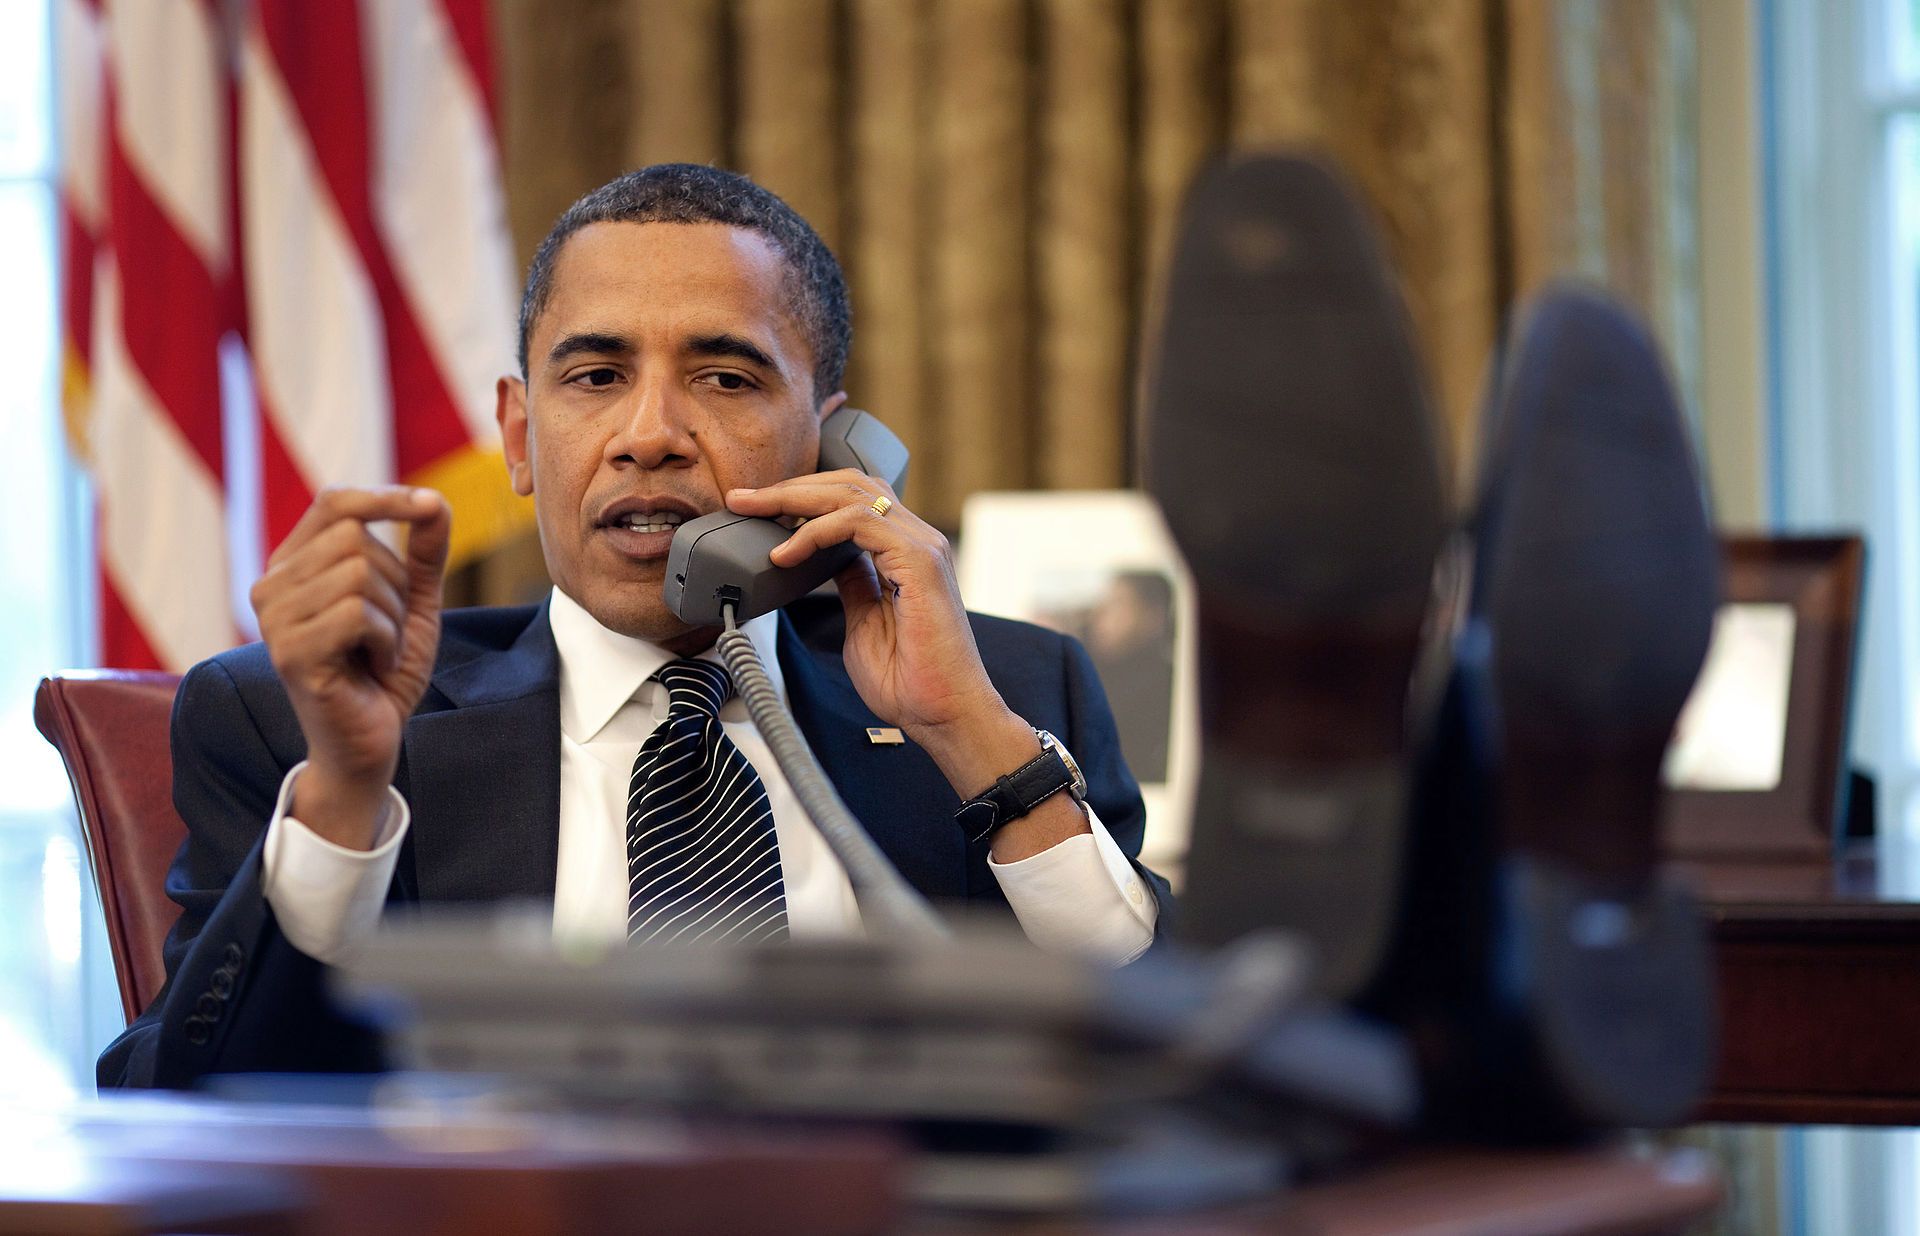 Barack_Obama_on_phone